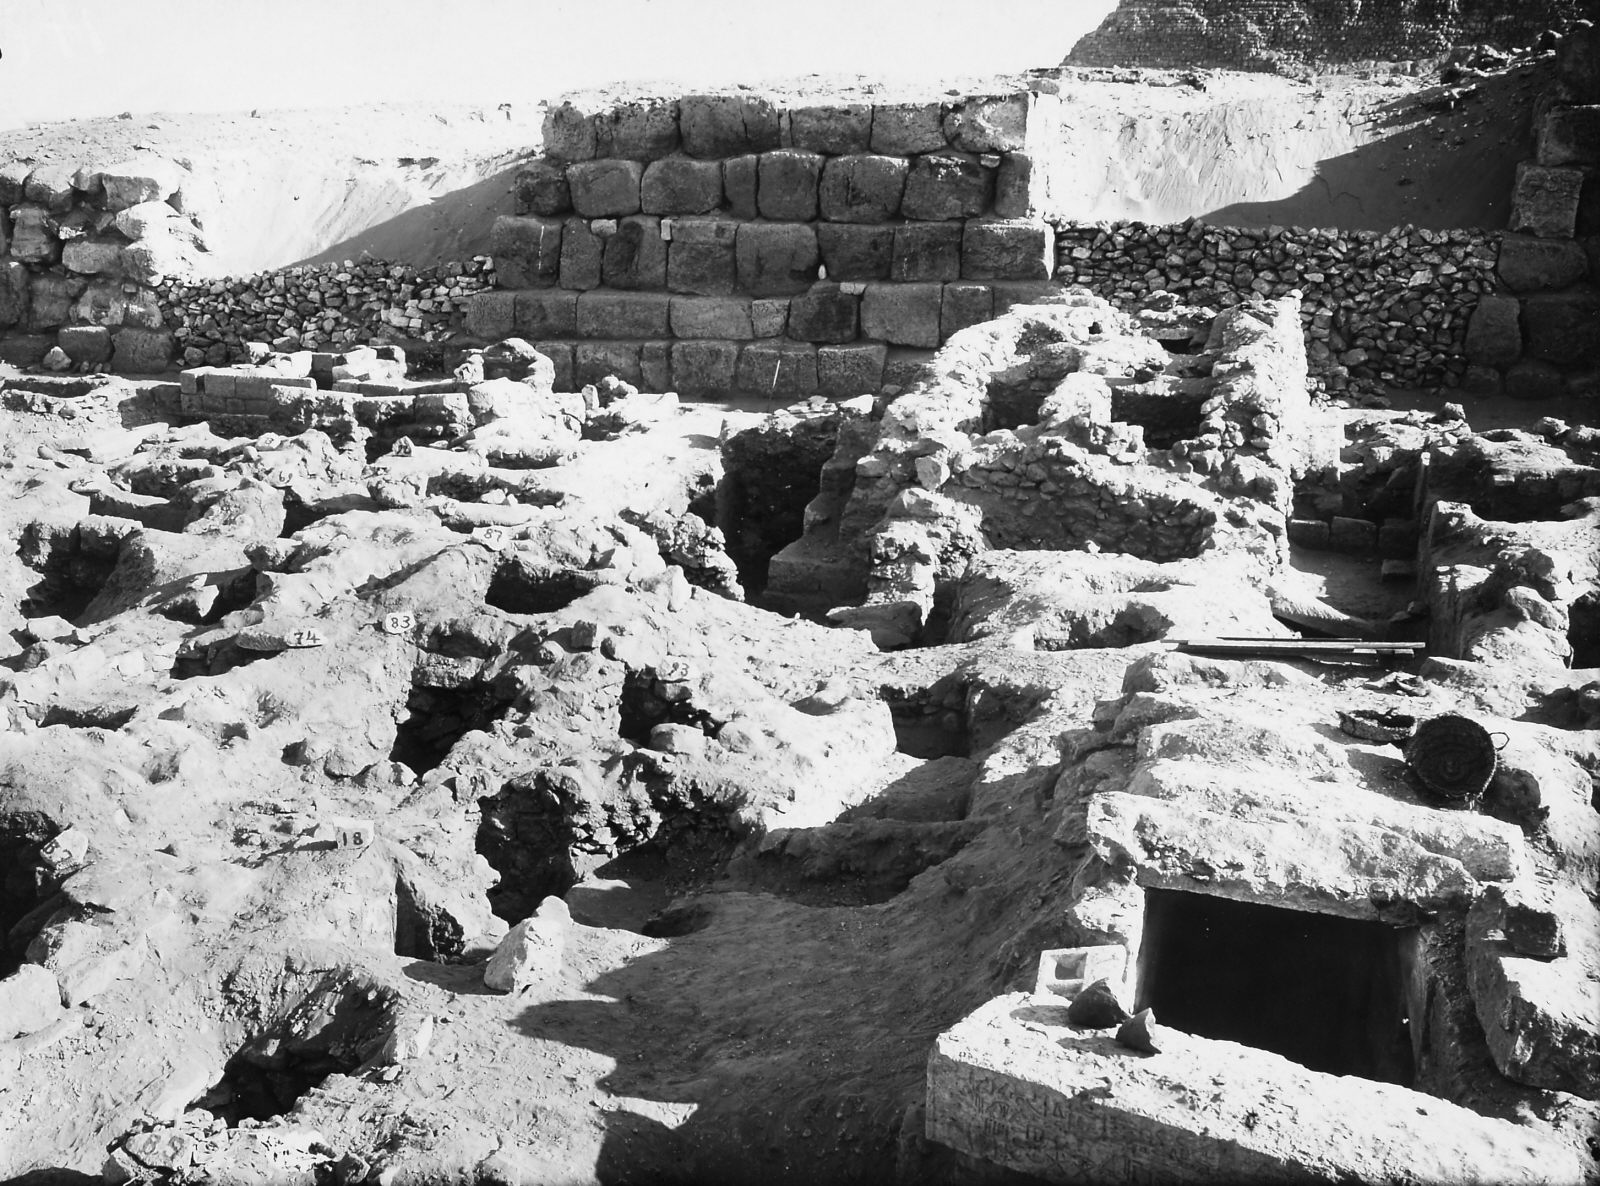 Area east and southeast of mastaba of User (1) (foreground right) with mastabas S 104 and S 95/112 (to southeast), shaft S 7 (foreground left), mastaba S 5/18 (foreground center) with mastaba S 91/93 and intrusive shafts S 83 and S 87 (middle ground center left), mastaba S 8/82 (middle ground left) and mastaba S 67/90 (background left), looking south-southeast to northern end of G 4660. Photo ID KHM_AEOS_I_5302, photo and description courtesy of the Giza Archives maintained by Harvard University and the Museum of Fine Arts Boston, online at Digital Giza.